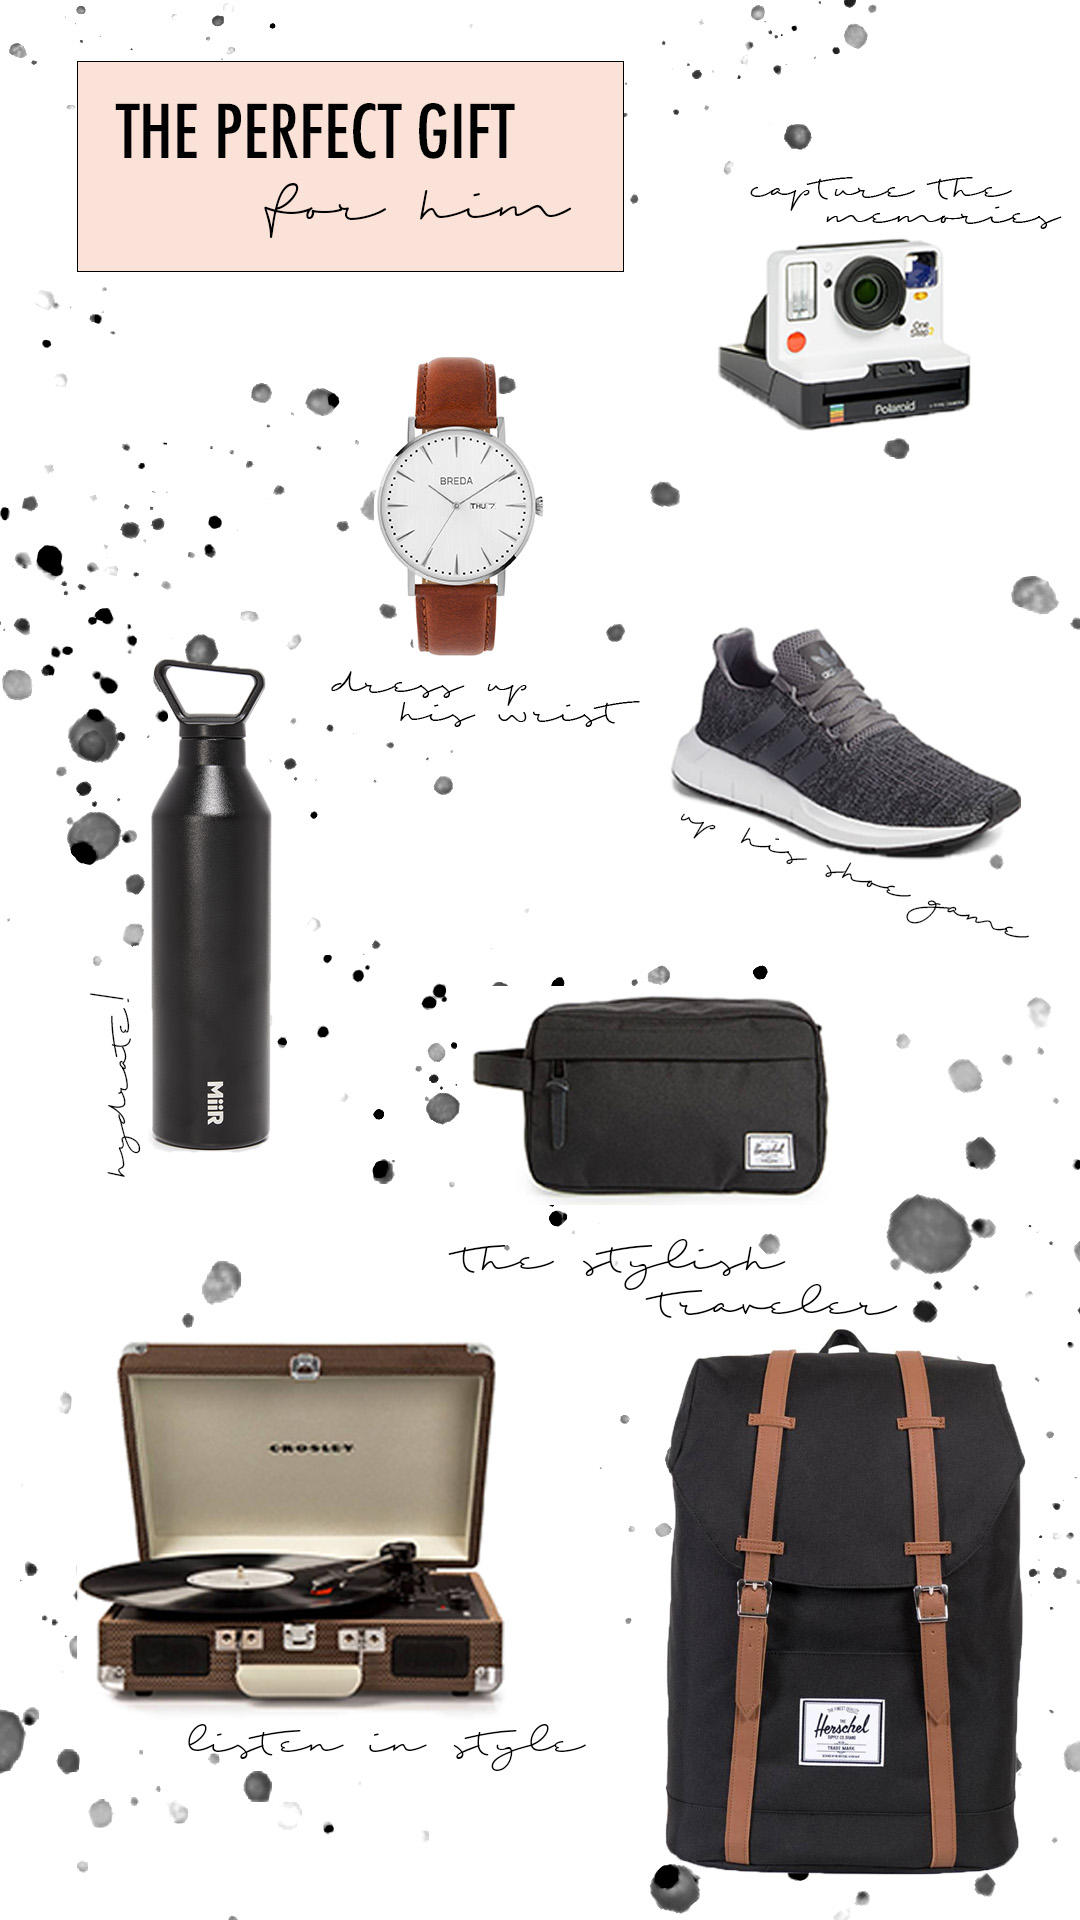 GIFT GUIDE #2: Gifts for your MAN